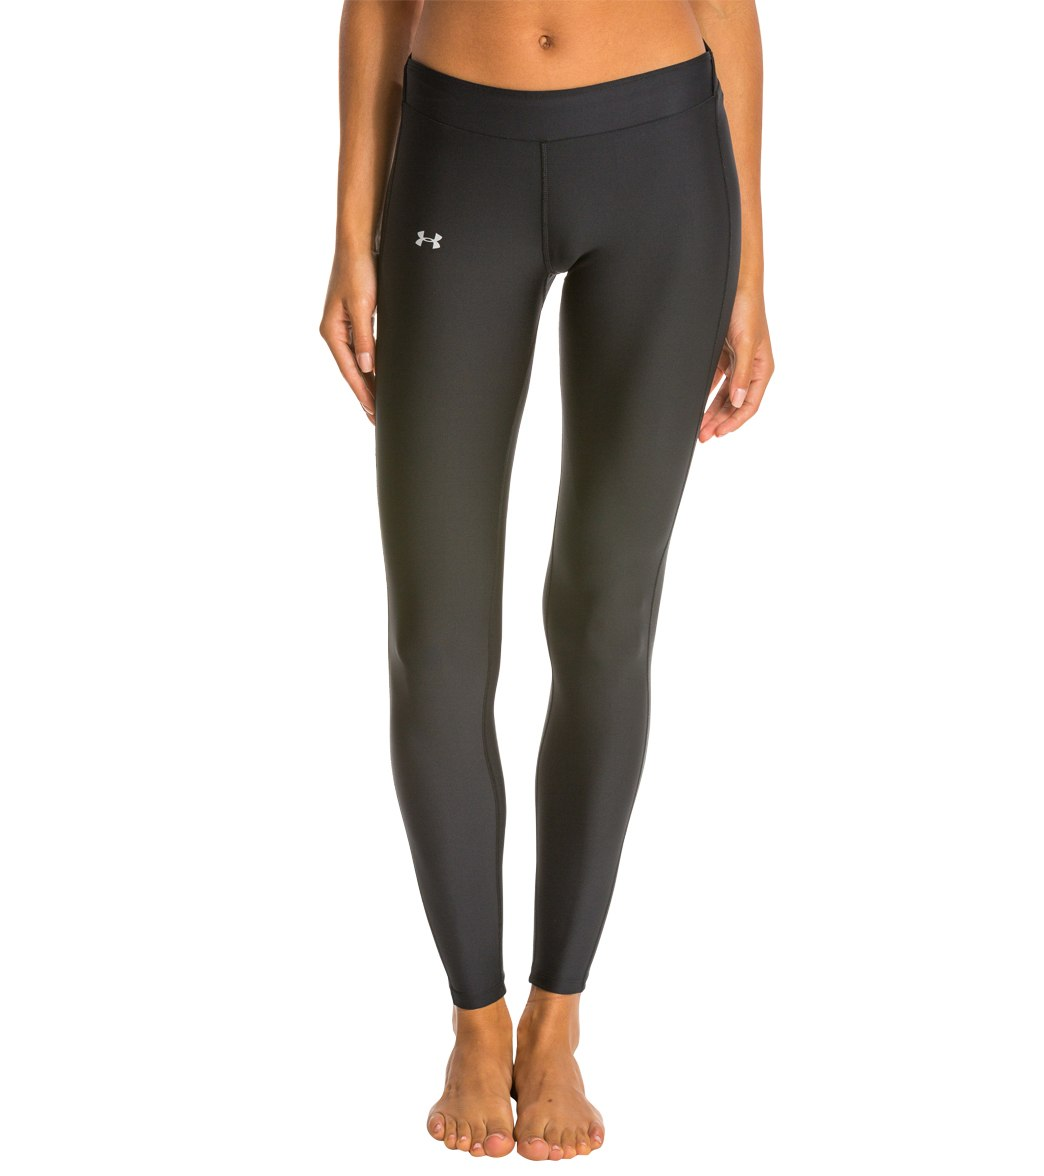 ea8b4f7a8 Under Armour Women's Armour ColdGear Compression Legging at SwimOutlet.com  - Free Shipping